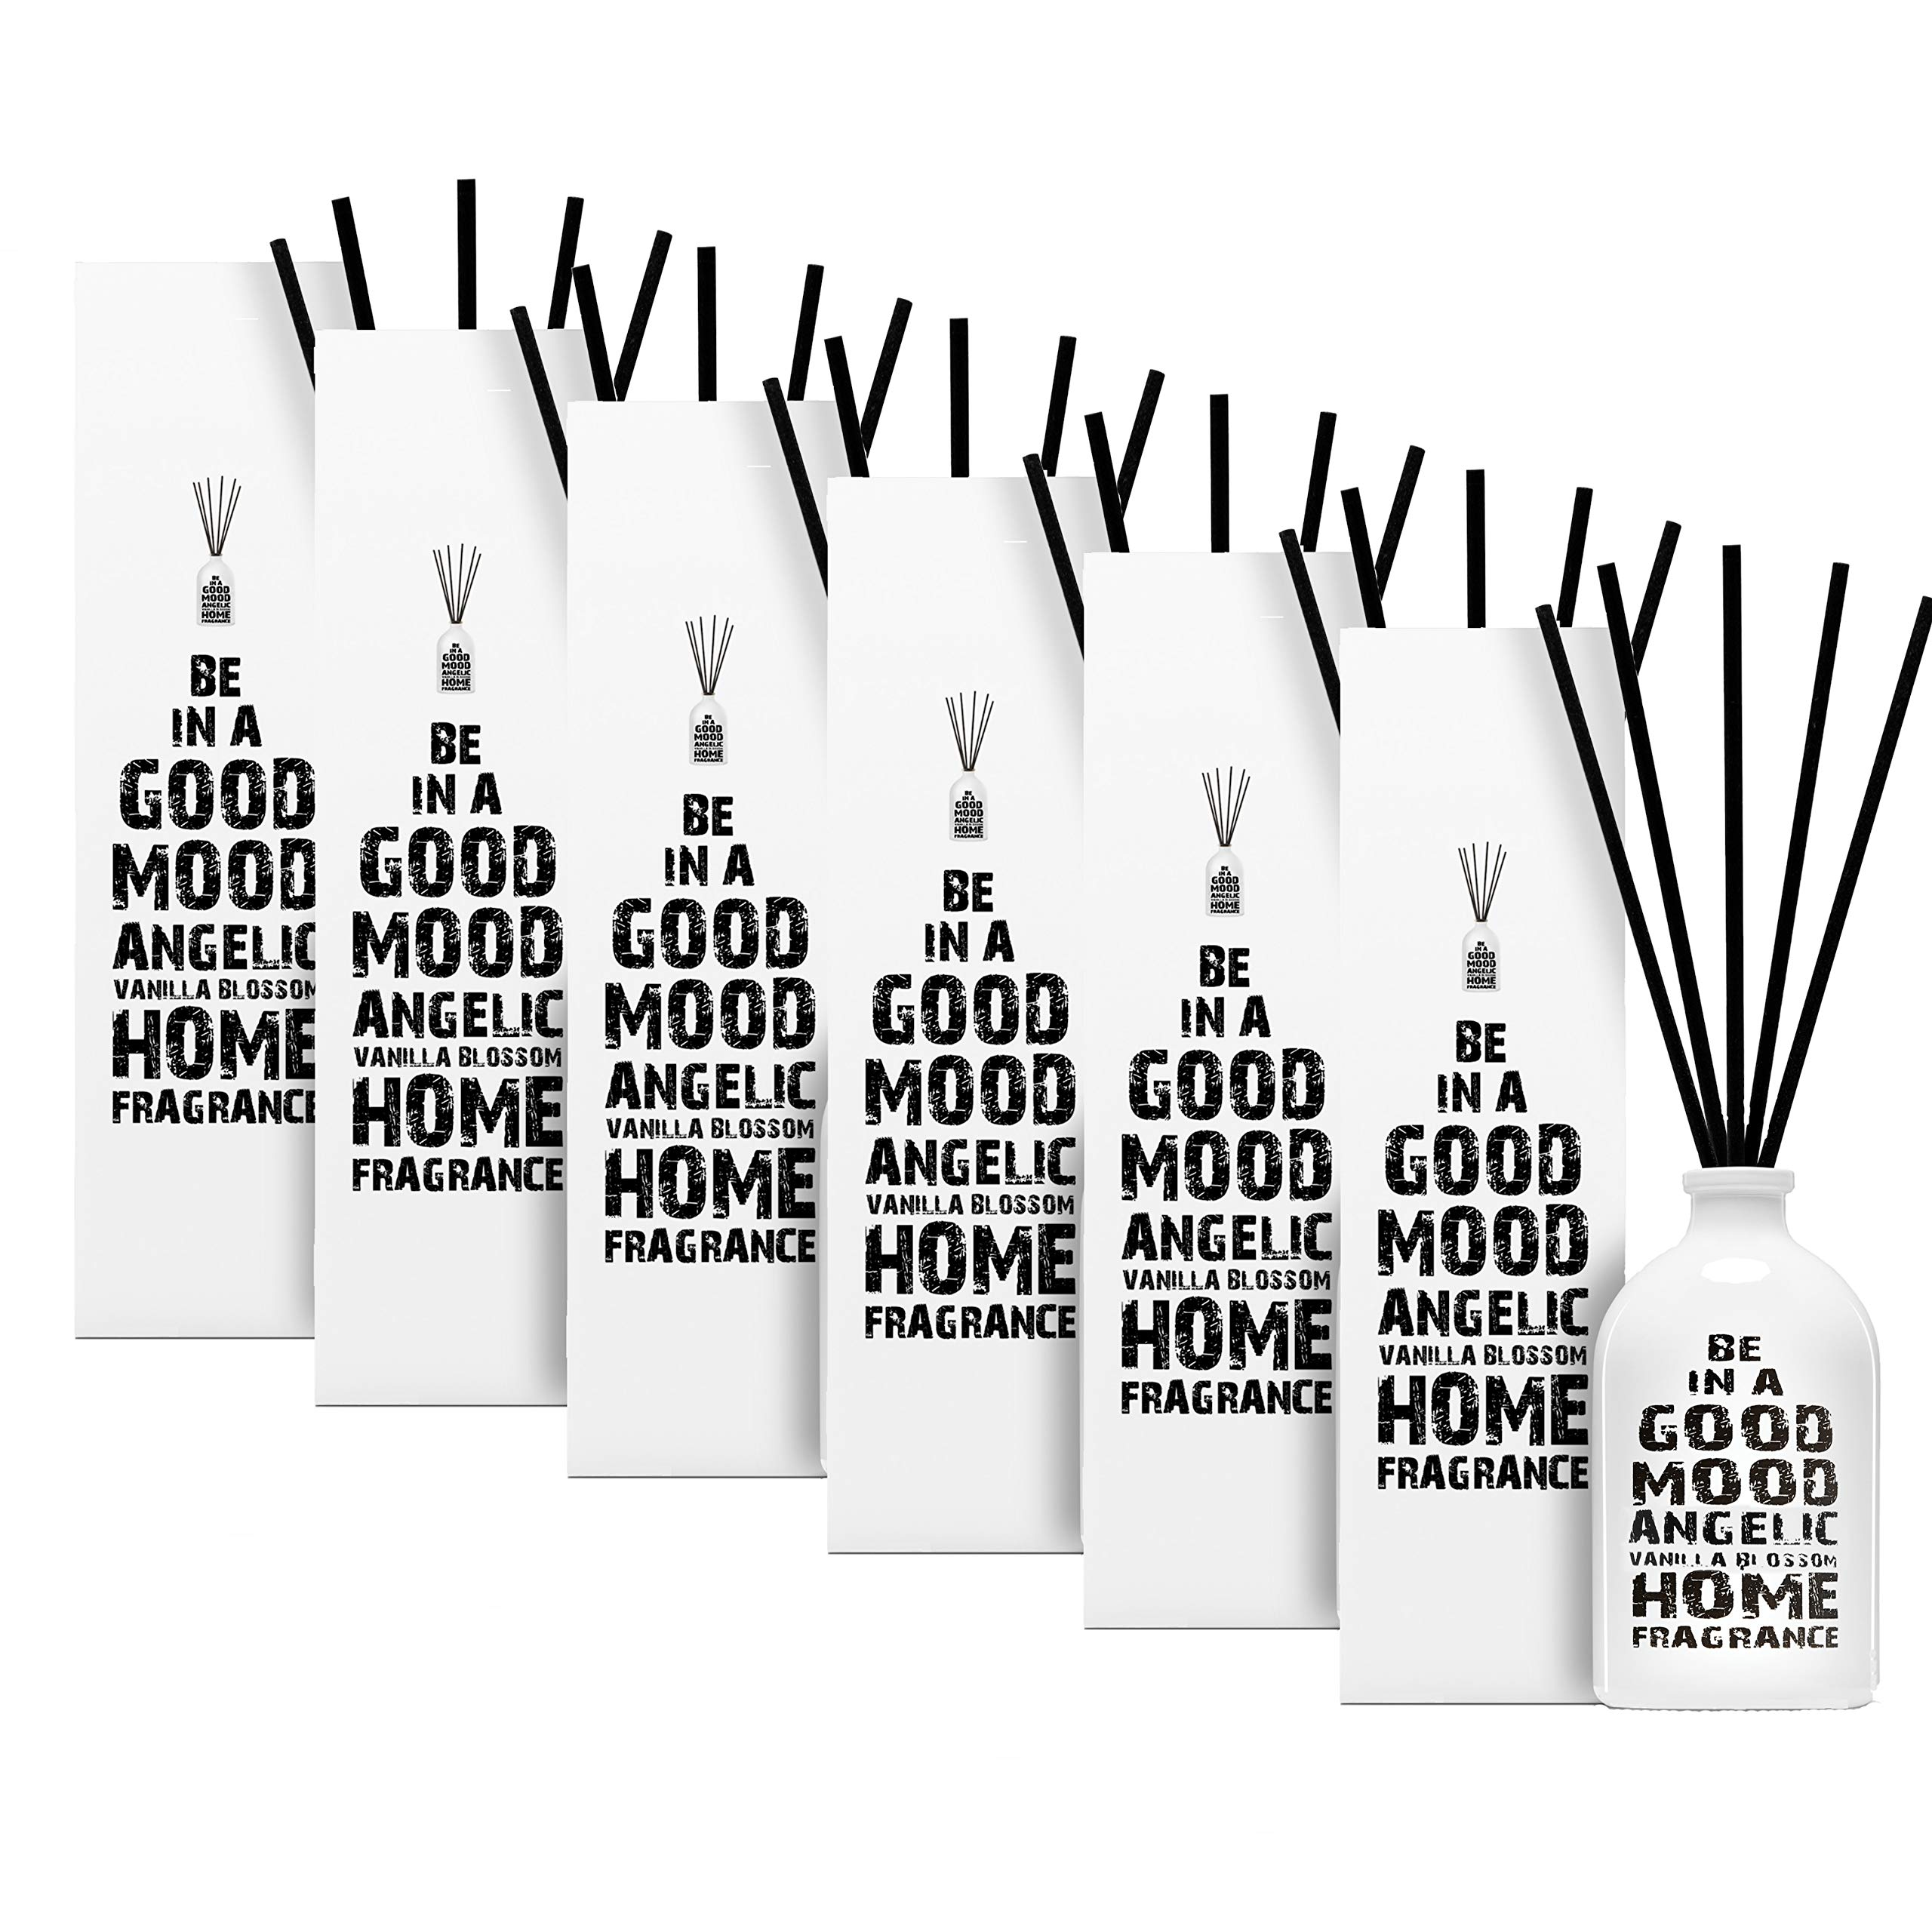 Be in a Good Mood Aromatherapy Diffuser Sticks | Reed Diffuser Set | Aromatic Home Fragrance Set | Essential Oil Diffuser Sticks, Made of Natural Scented Oils Blend - 6 Pack (Vanilla Blossom) by Be in a Good Mood (Image #2)